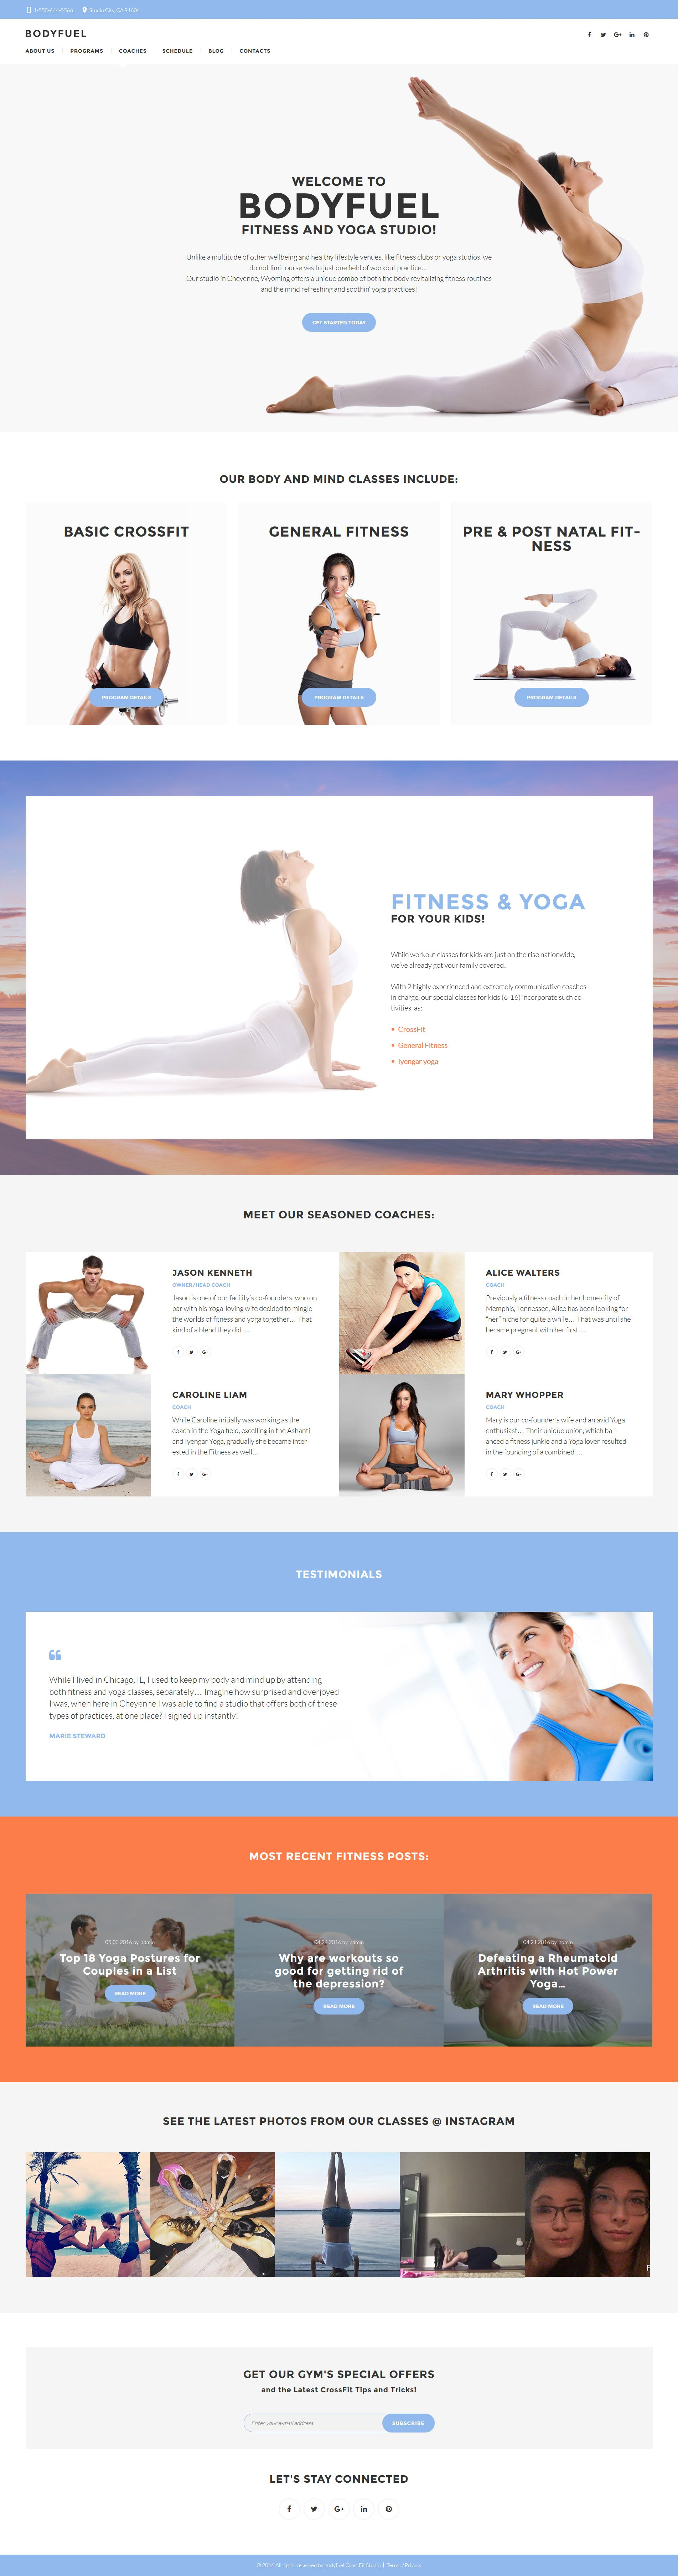 BodyFuel - Fitness & Yoga WordPress Theme - screenshot